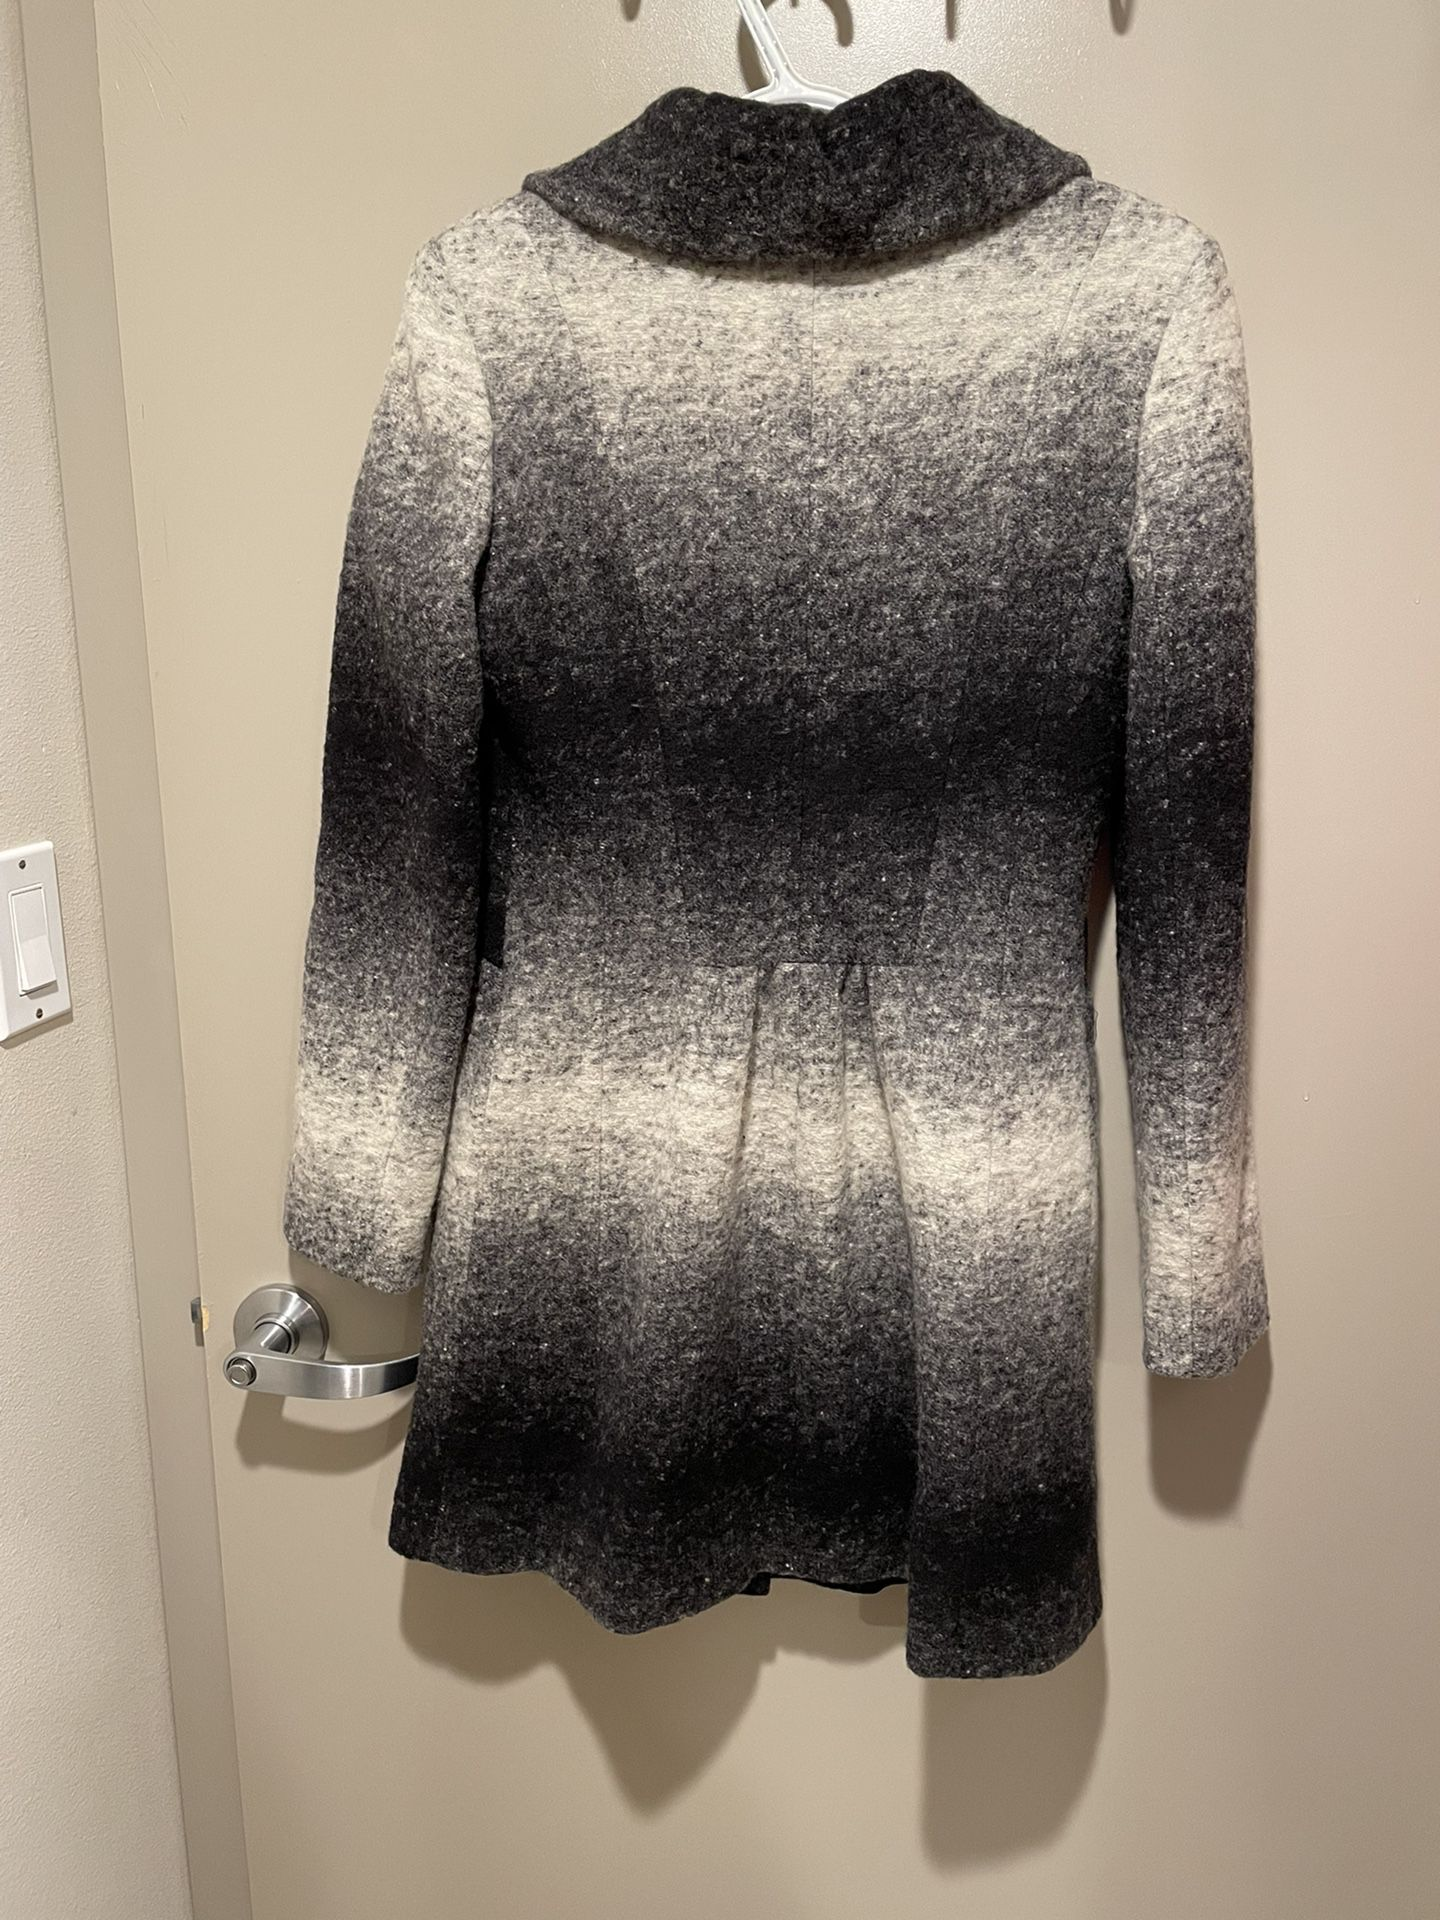 Small Woman/ Youth Girl Coat